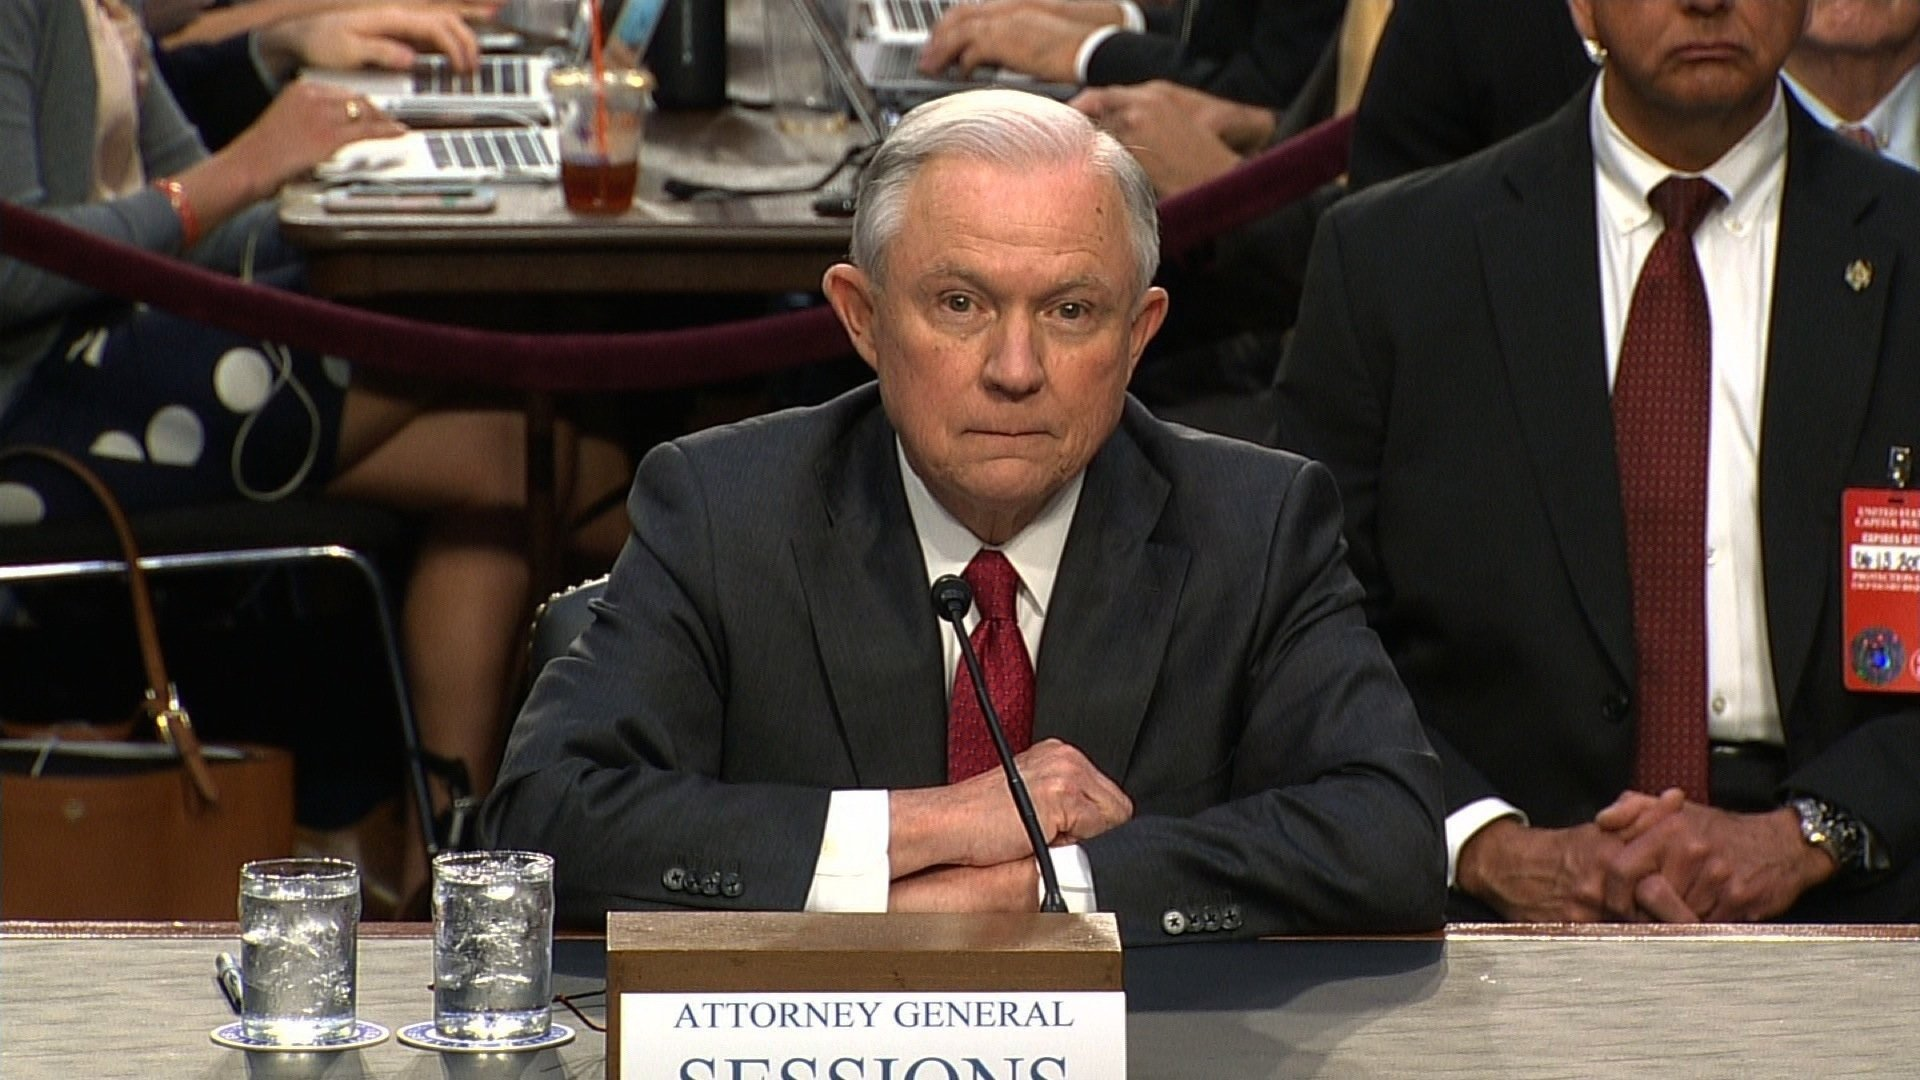 Trump's Attorney General Sessions calls charges he colluded with Russian Federation a 'lie'